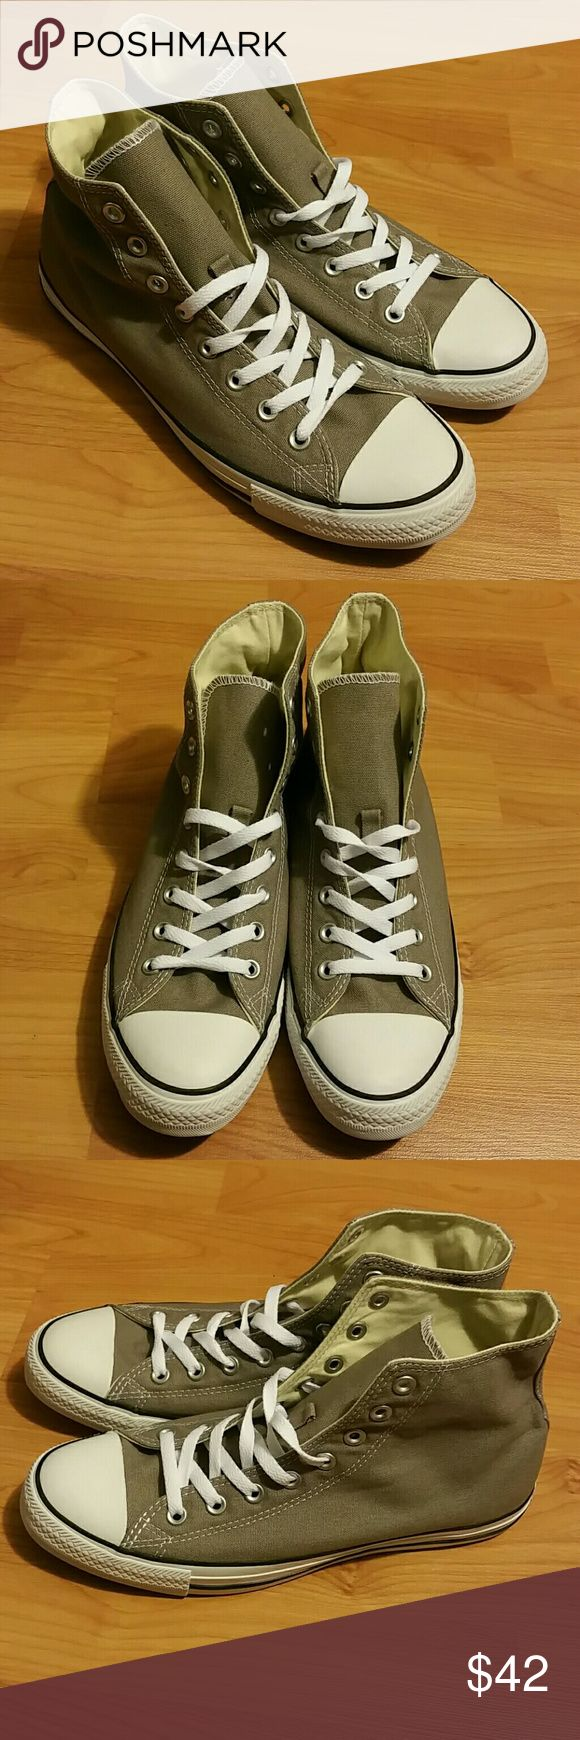 Mens converse all star New. Size 9.5. Never worn. Color gray. Converse Shoes Sneakers